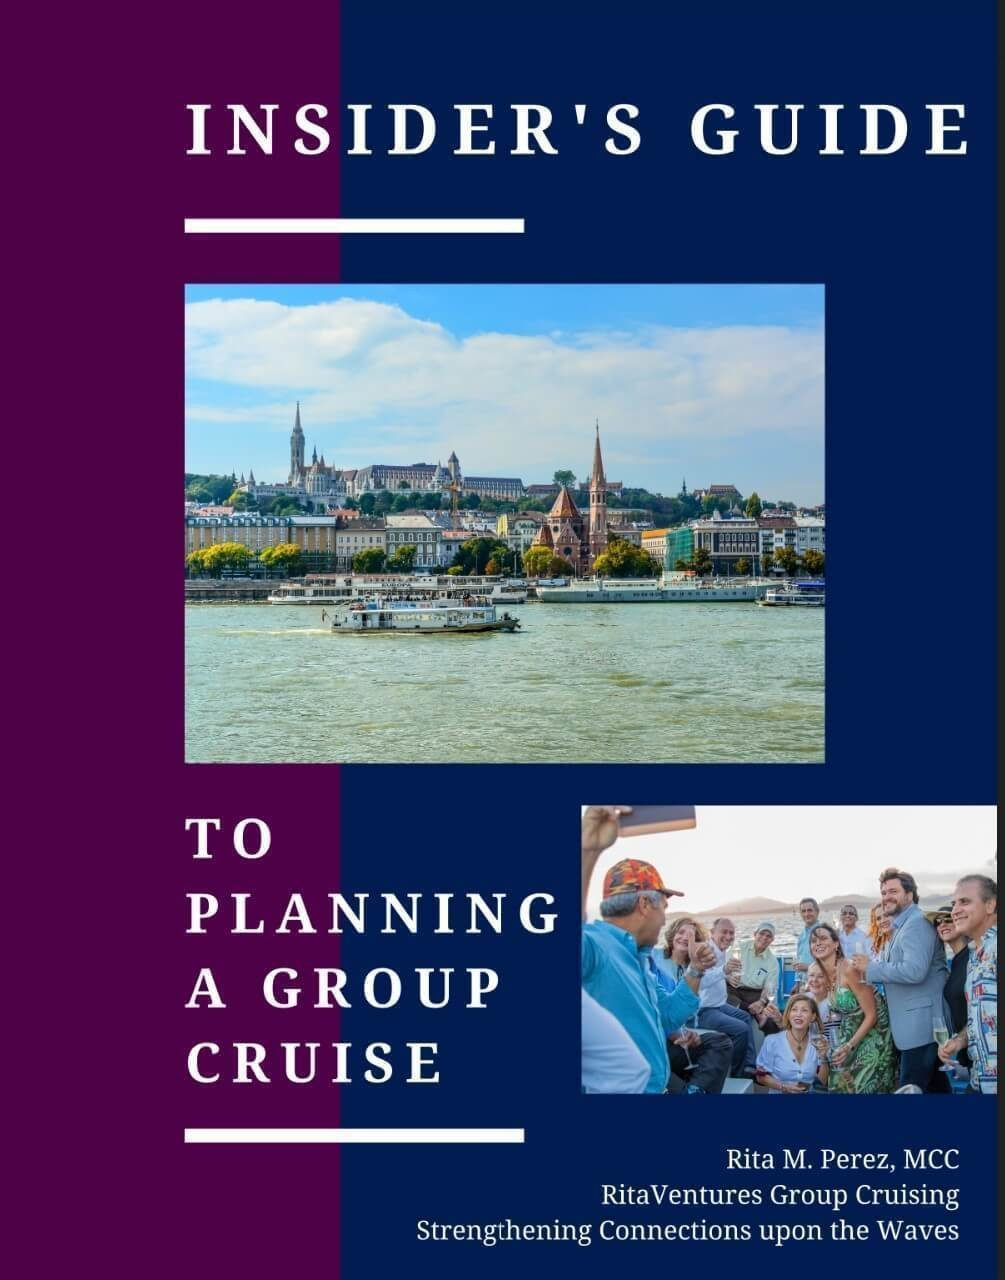 Rita's lead magnet: Insider's Guide to Booking a Group Cruise